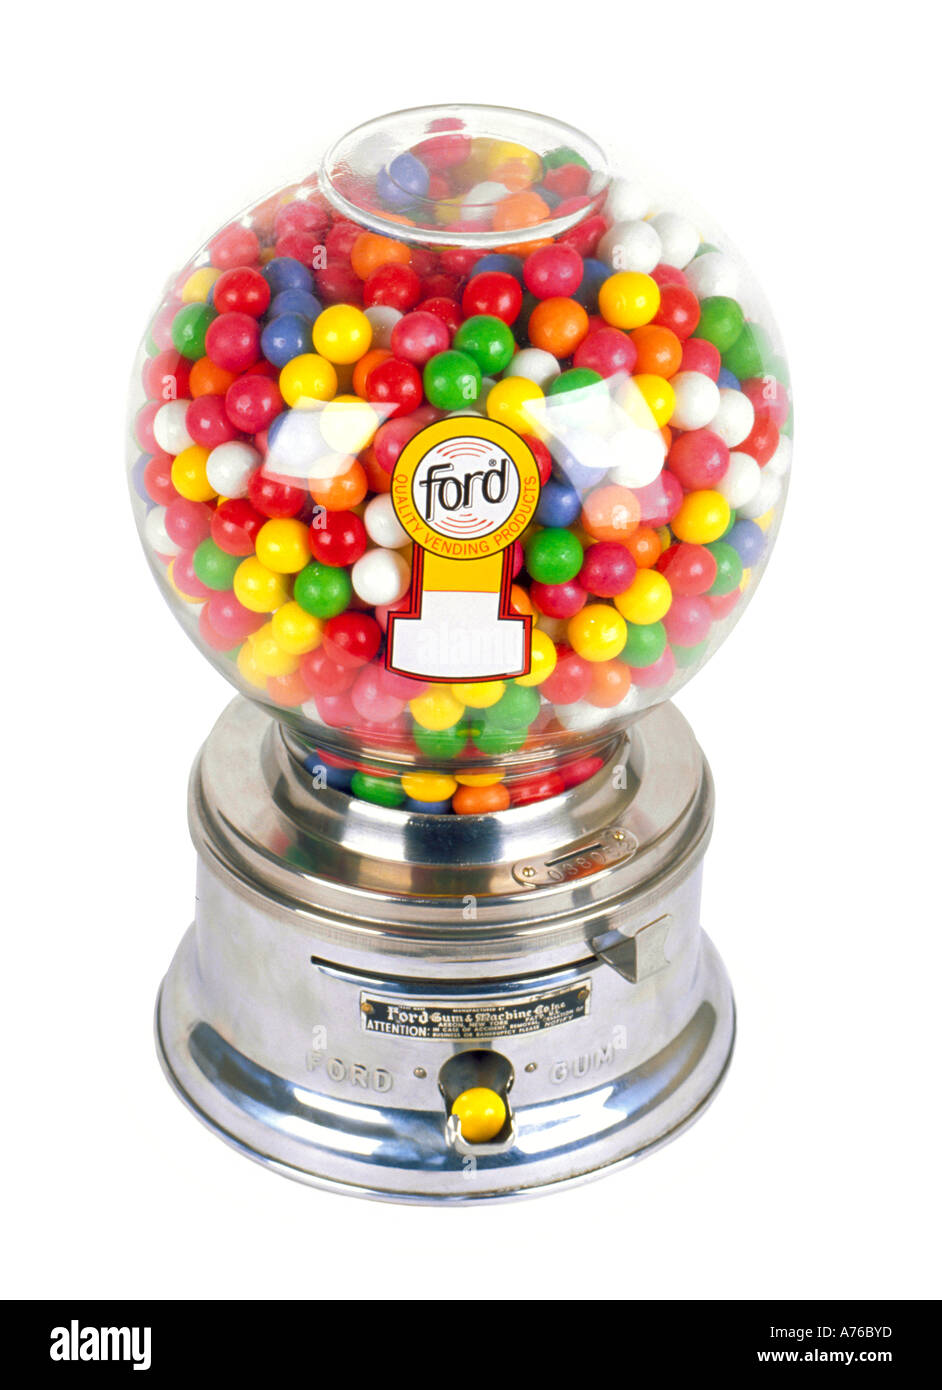 Chrome childrens bubble gum sweet dispenser on a pure white background. - Stock Image